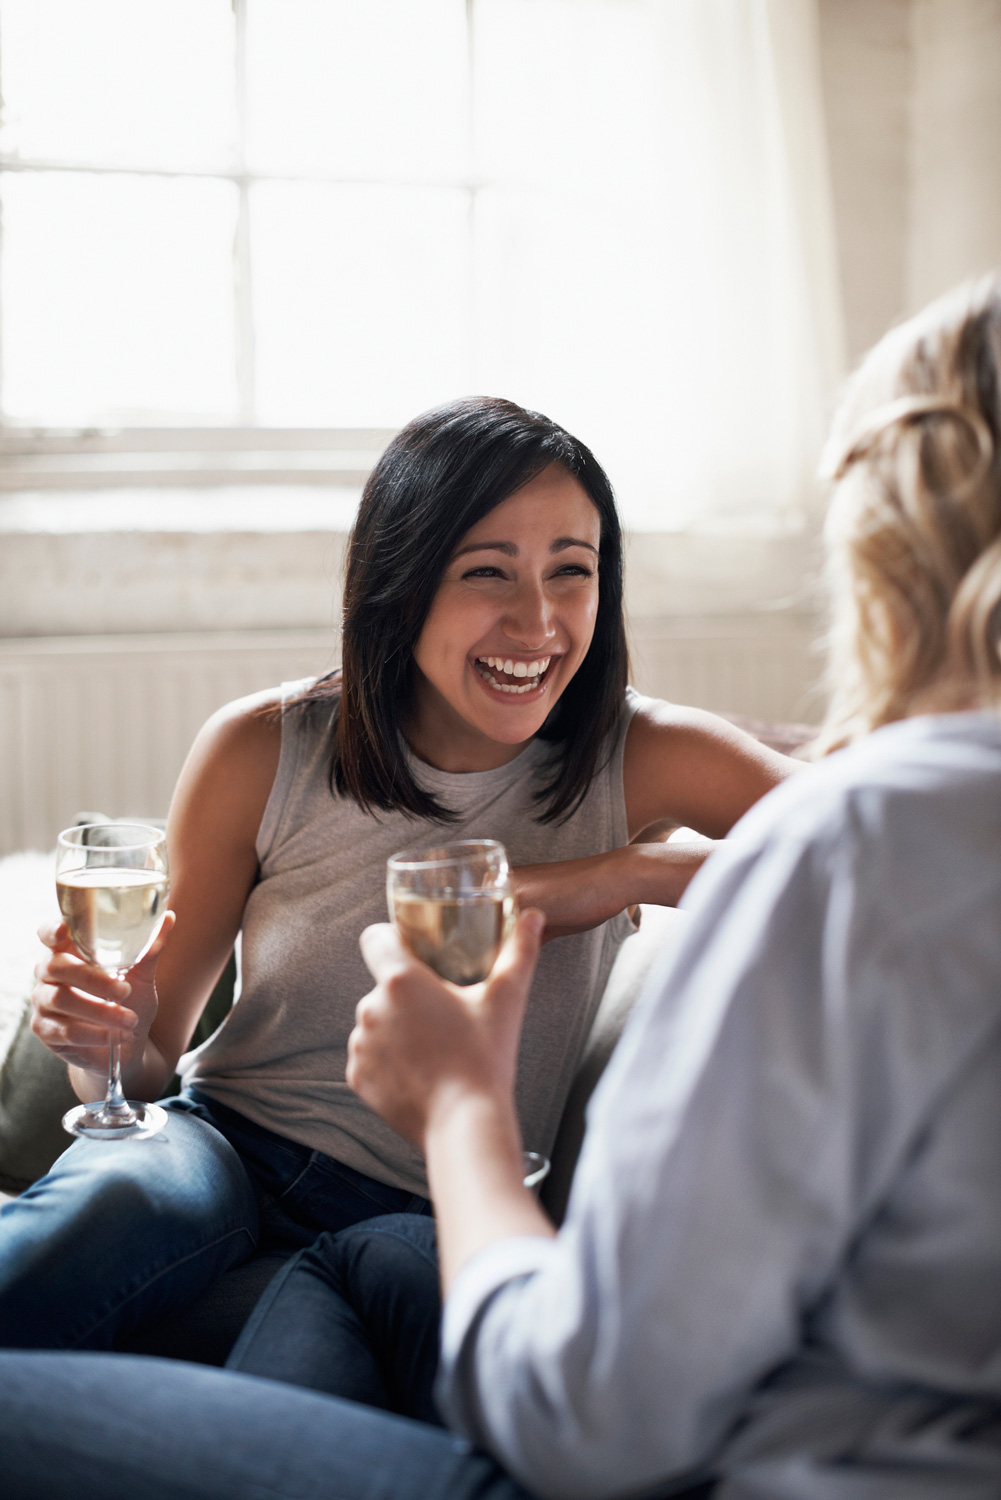 women-drinking-laughing